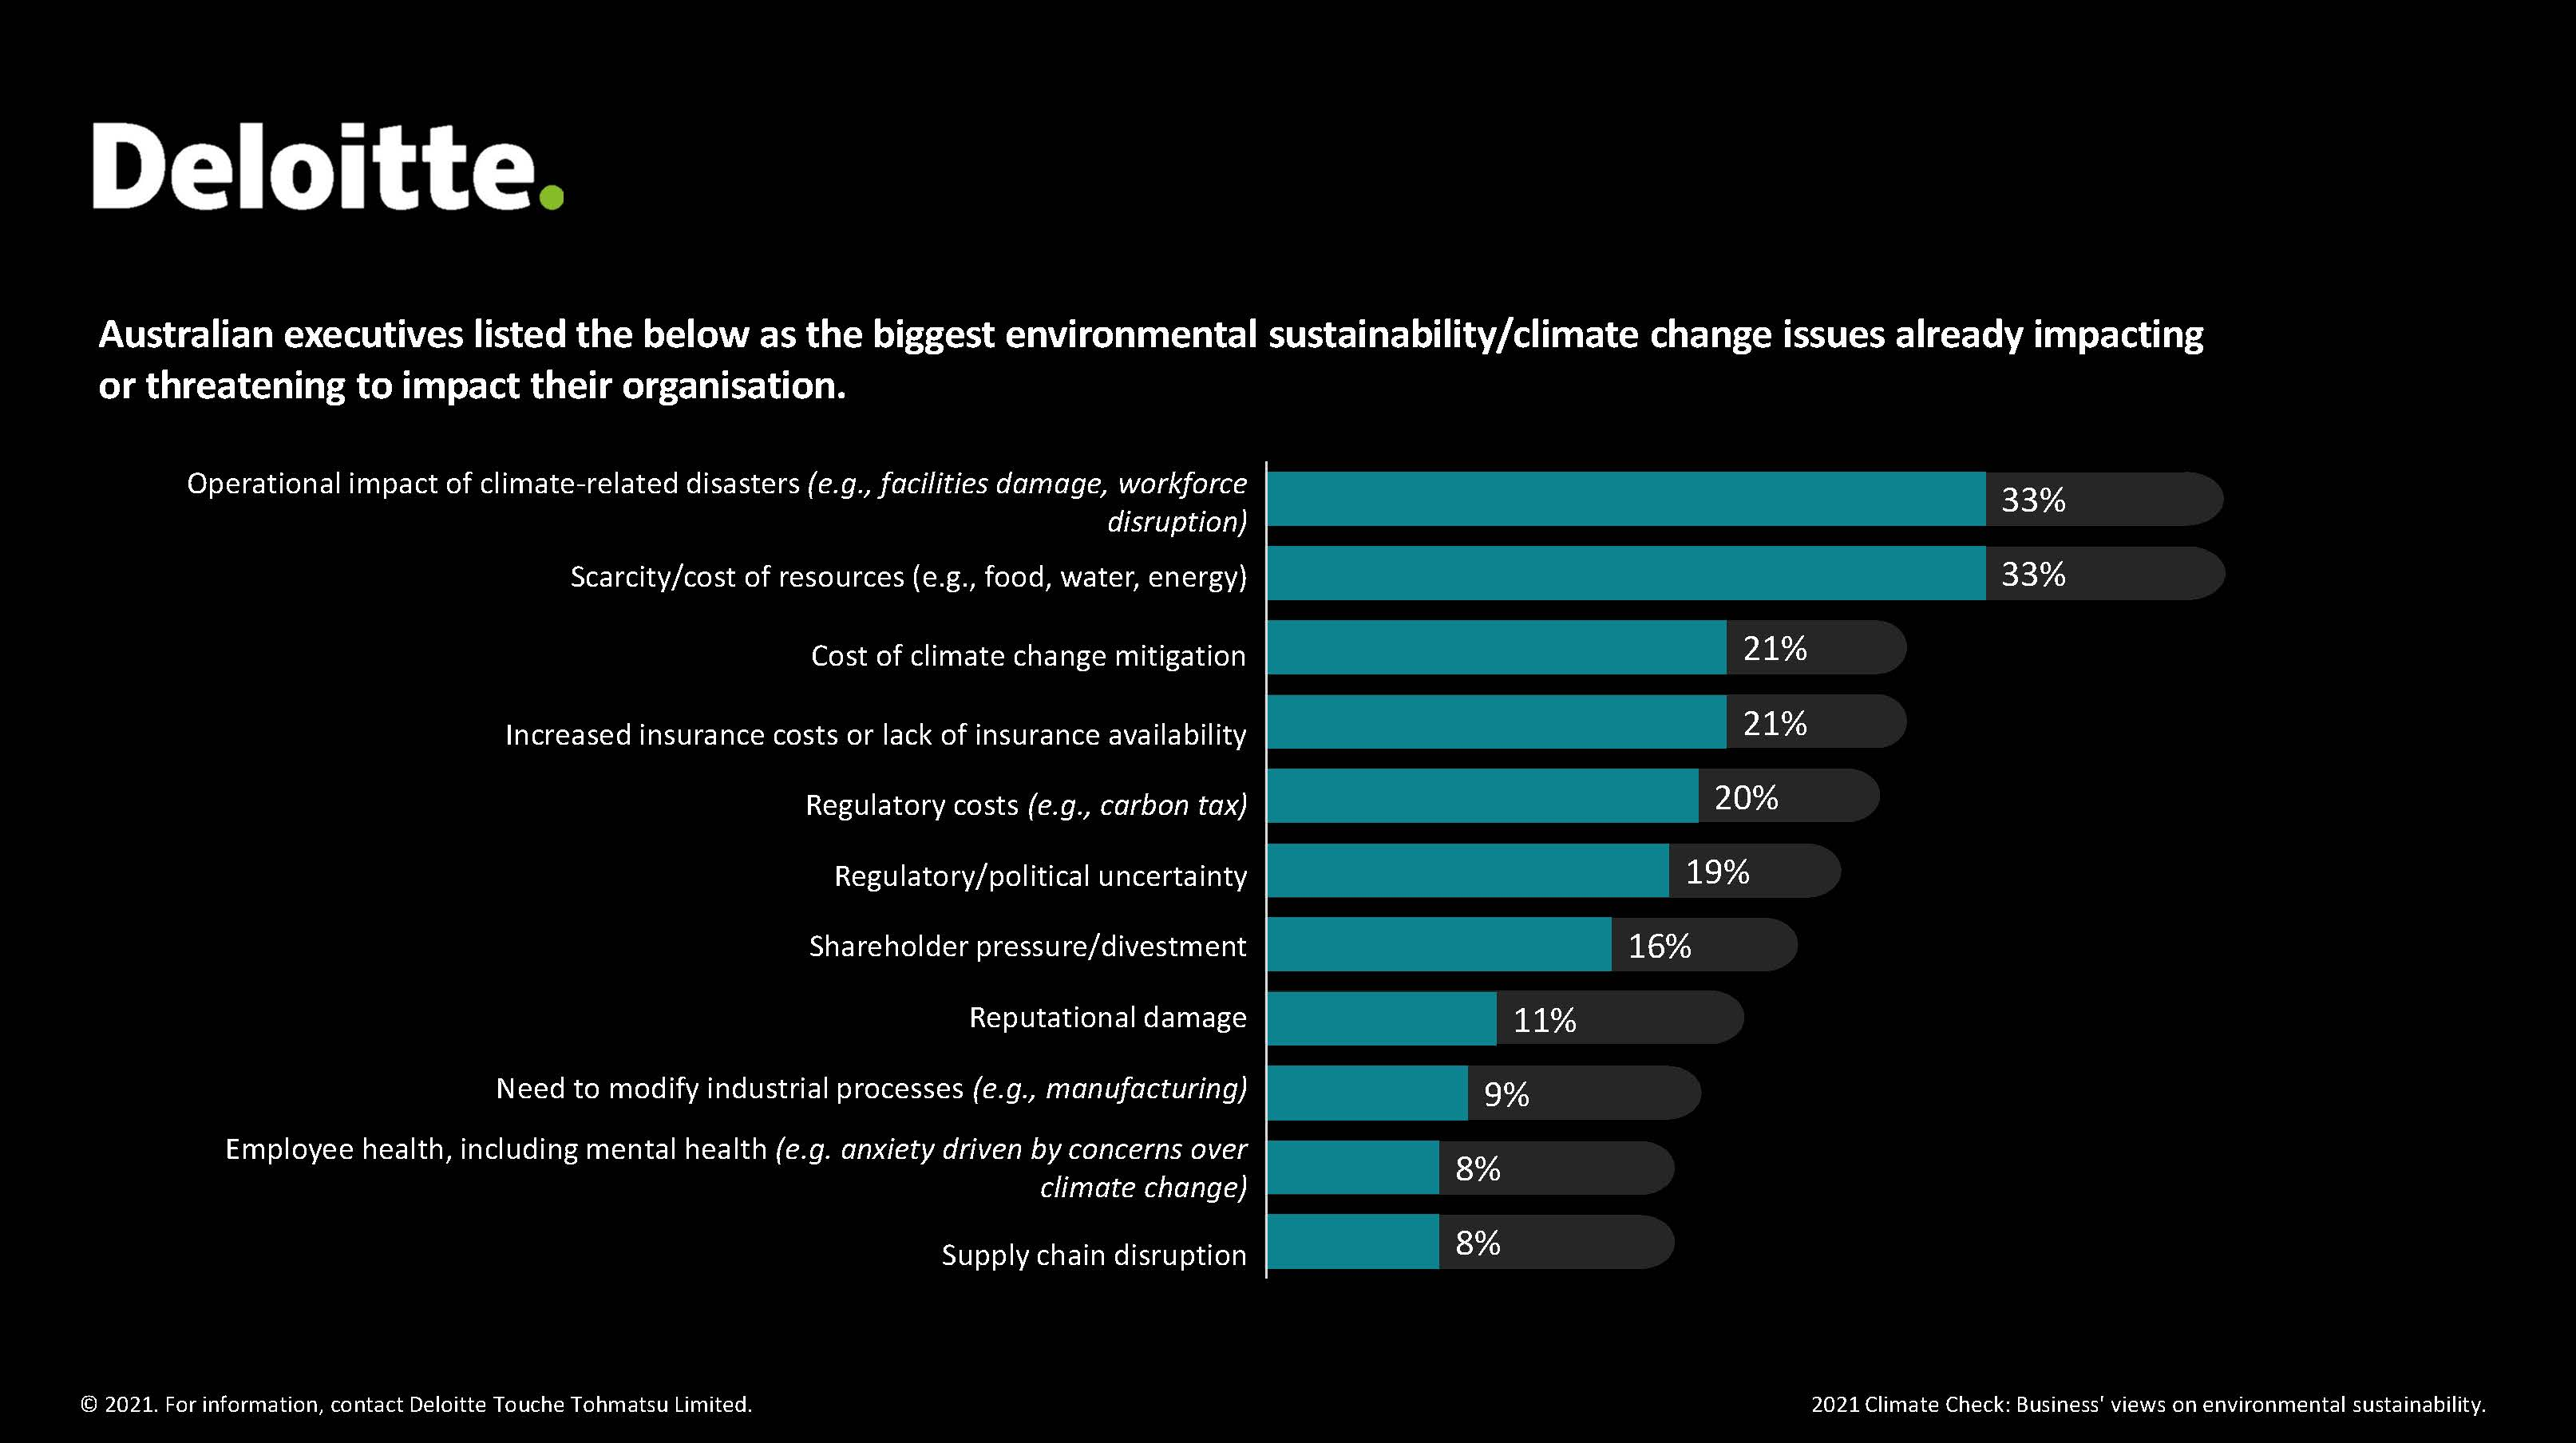 au-about-environmental-sustainability-climate change-issues-impact-2x1.jpg (3227×1808)